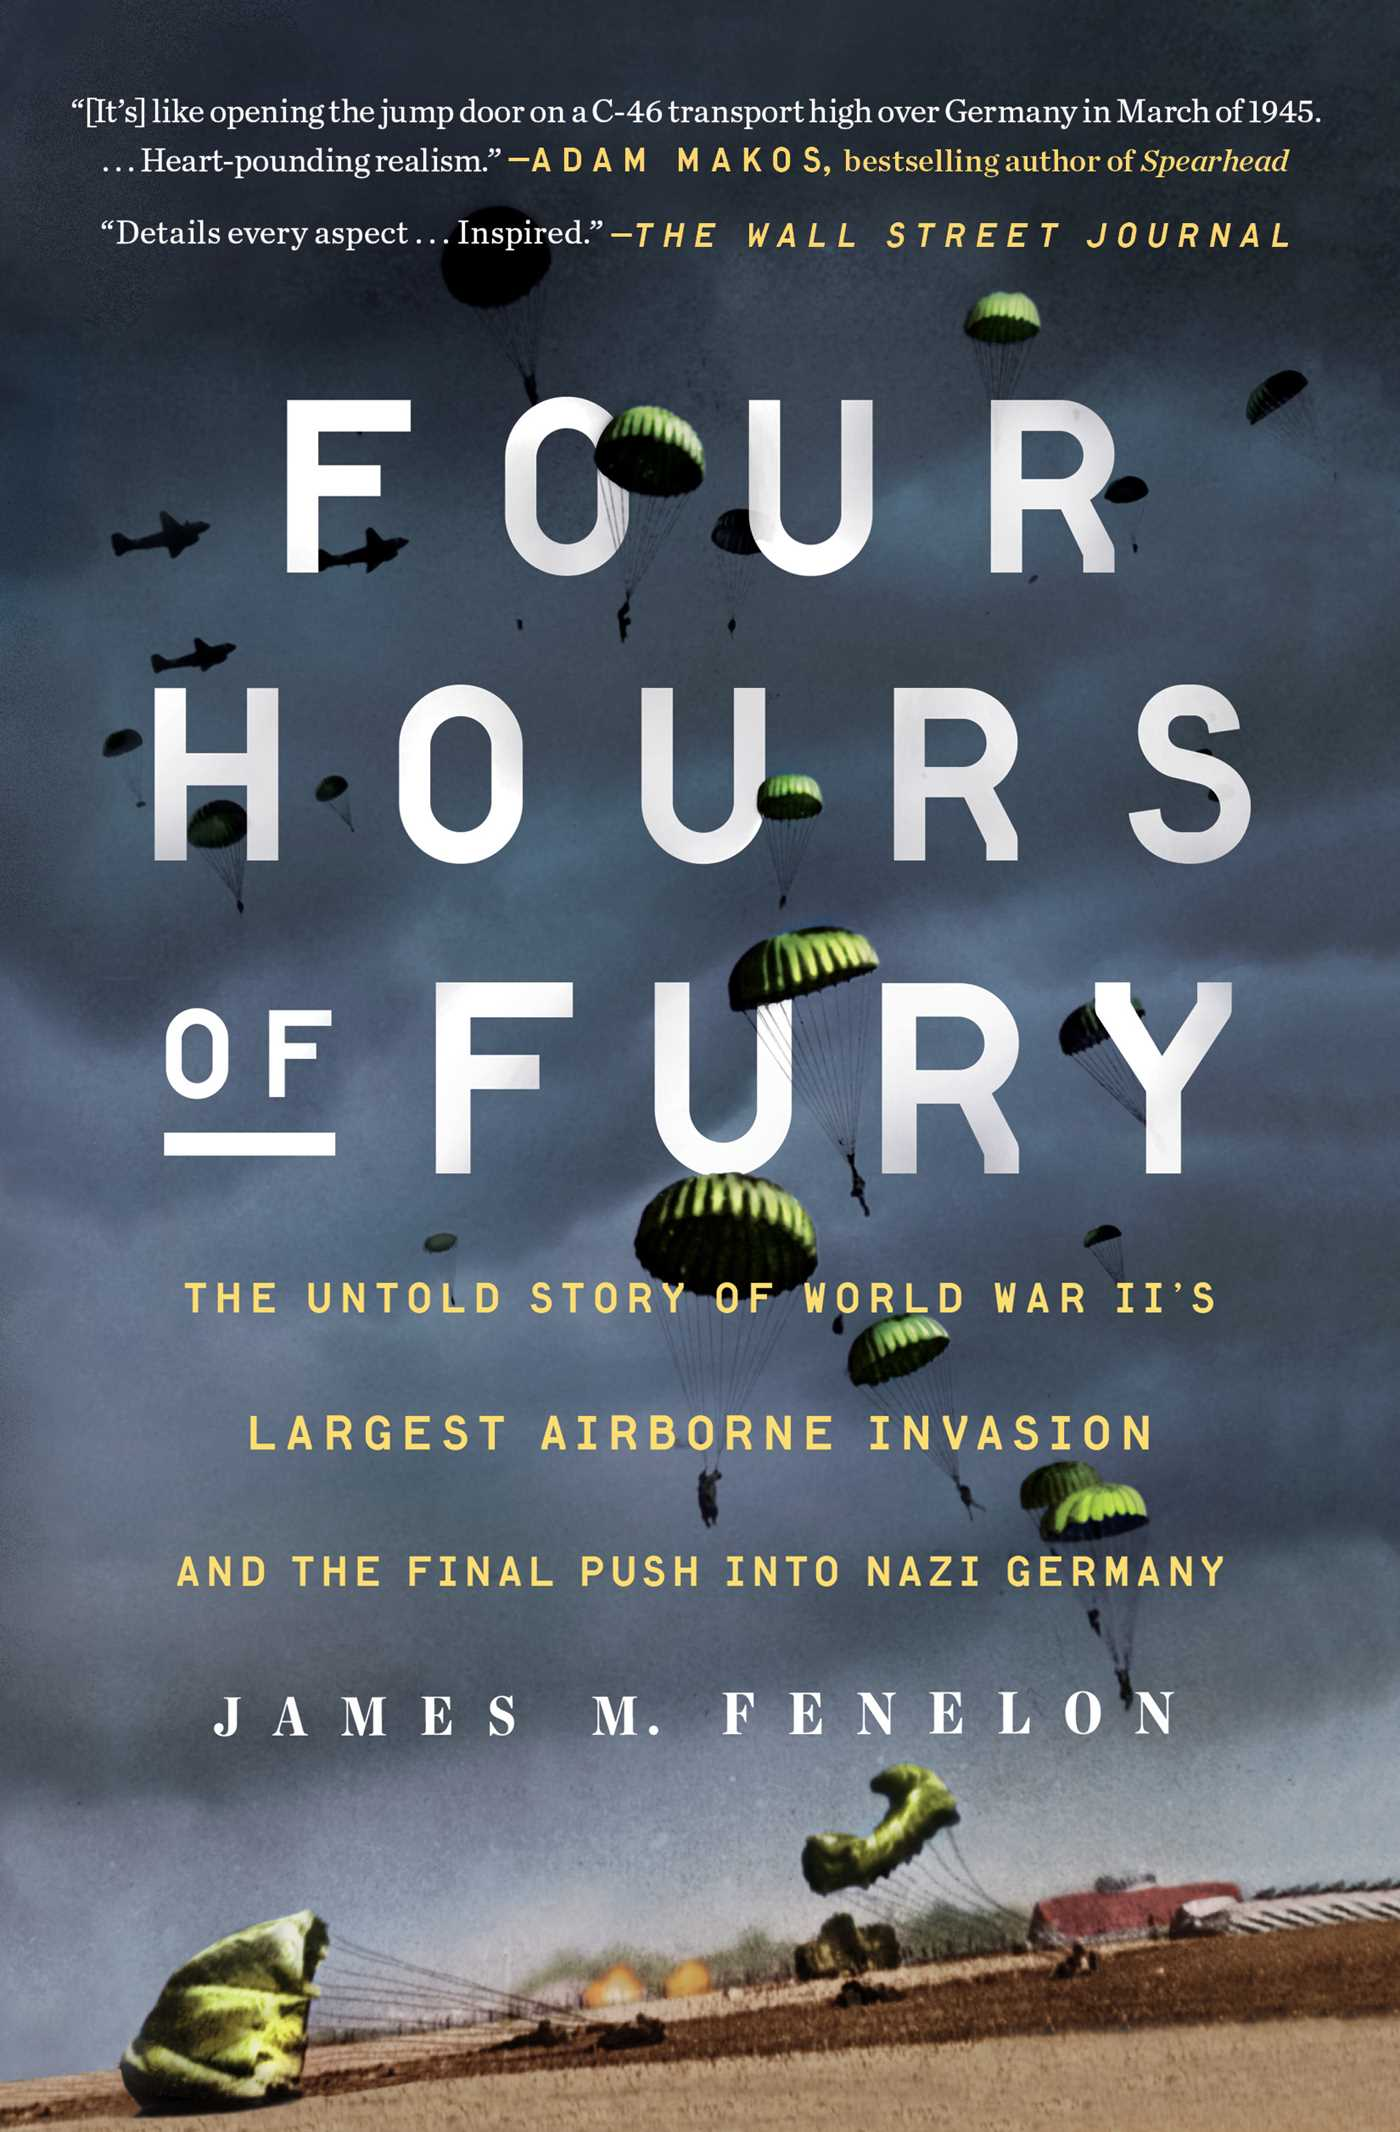 Four hours of fury the untold story of World War II's largest airborne operation and the final push into Nazi Germany cover image